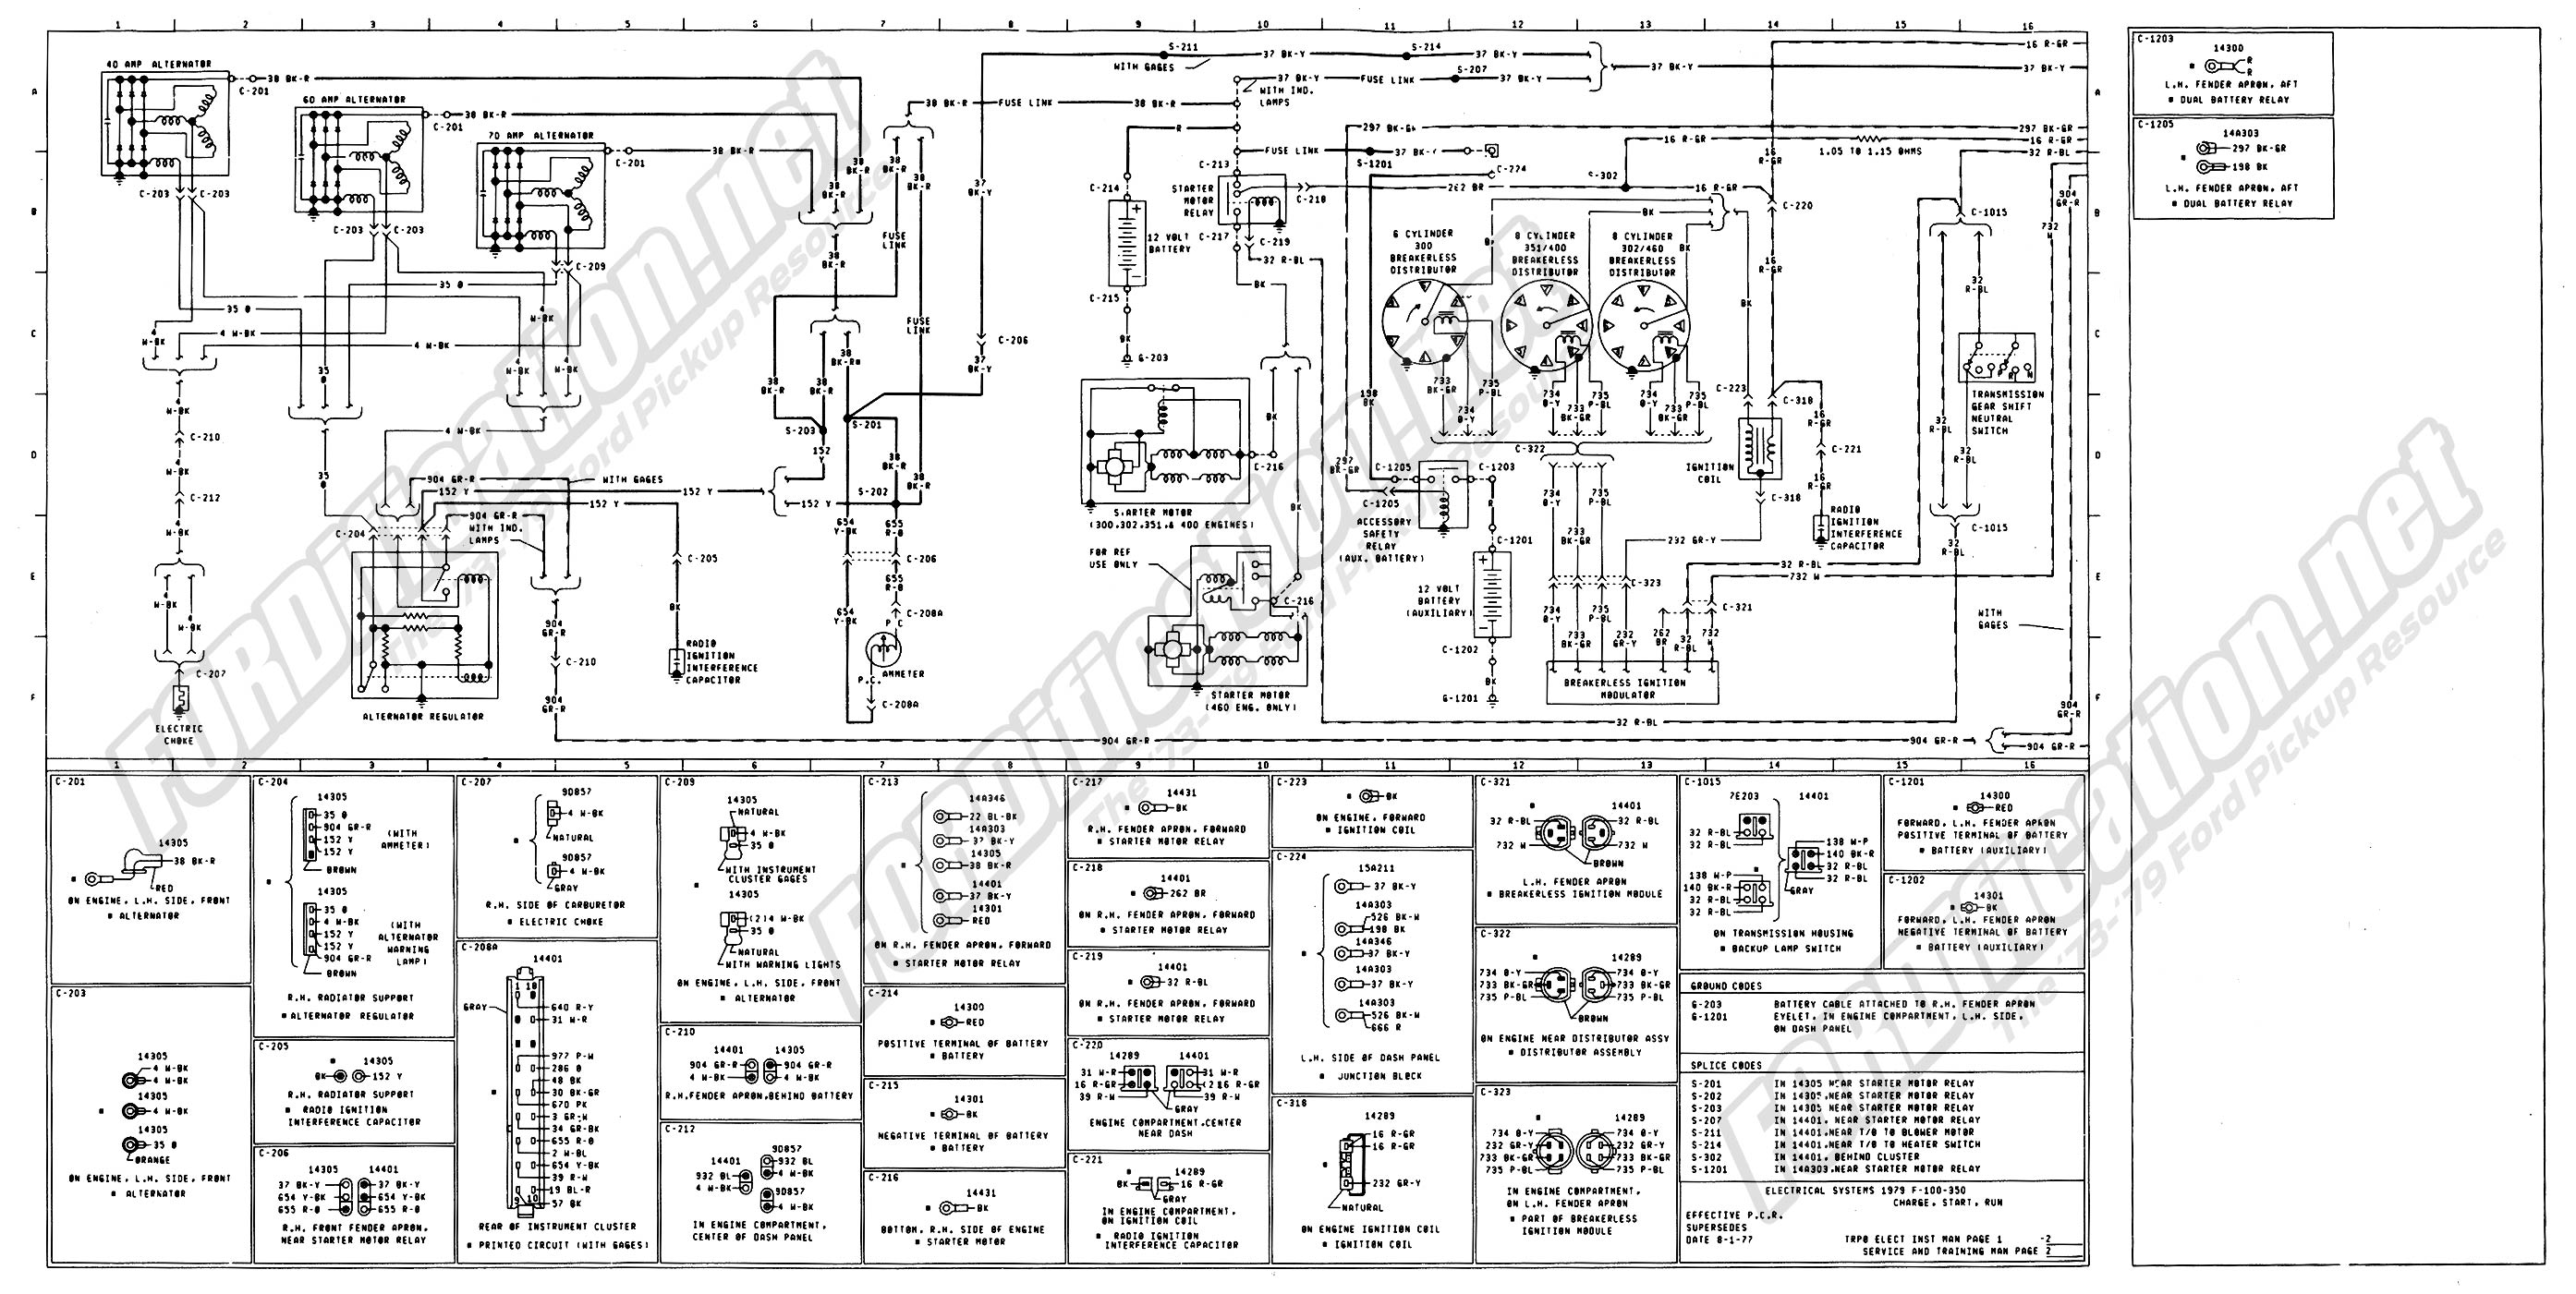 wiring_79master_2of9 1973 1979 ford truck wiring diagrams & schematics fordification net f150 wiring schematic at pacquiaovsvargaslive.co